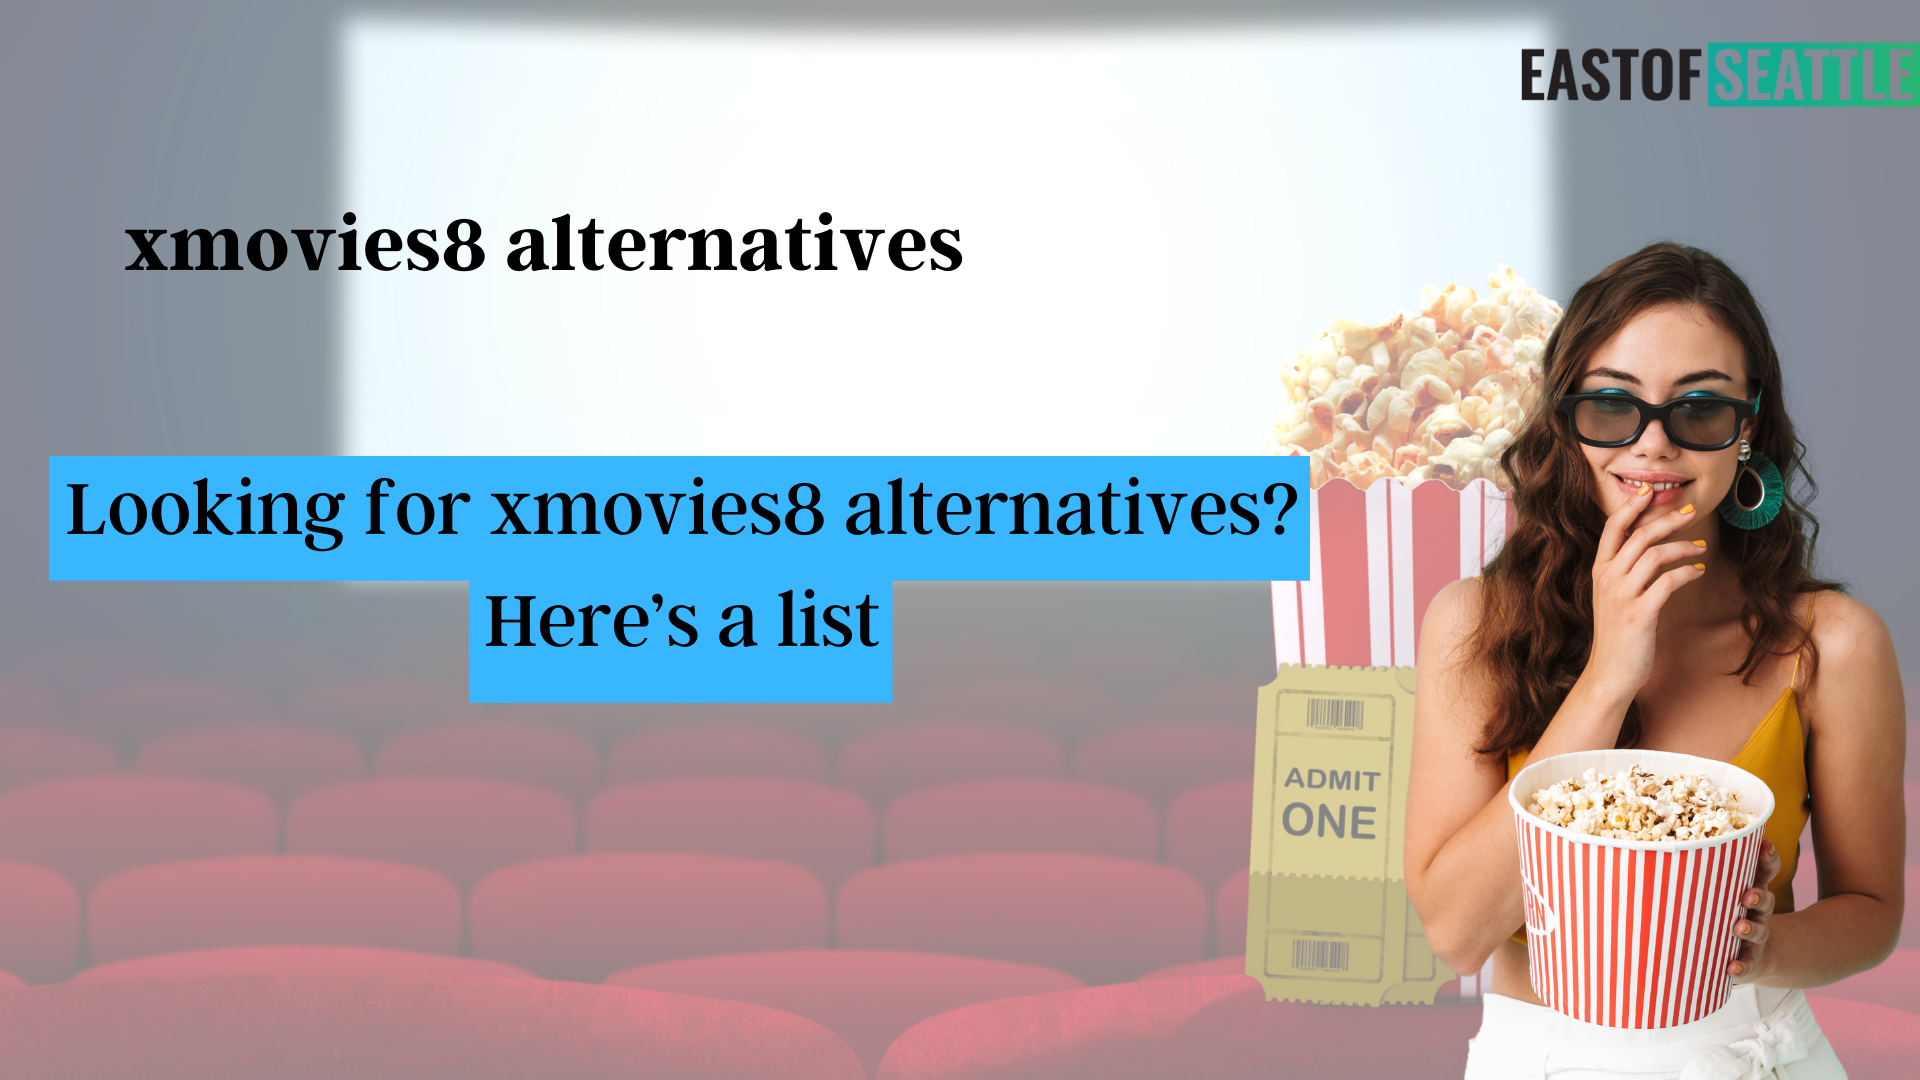 Looking for xmovies8 alternatives? Here's a list